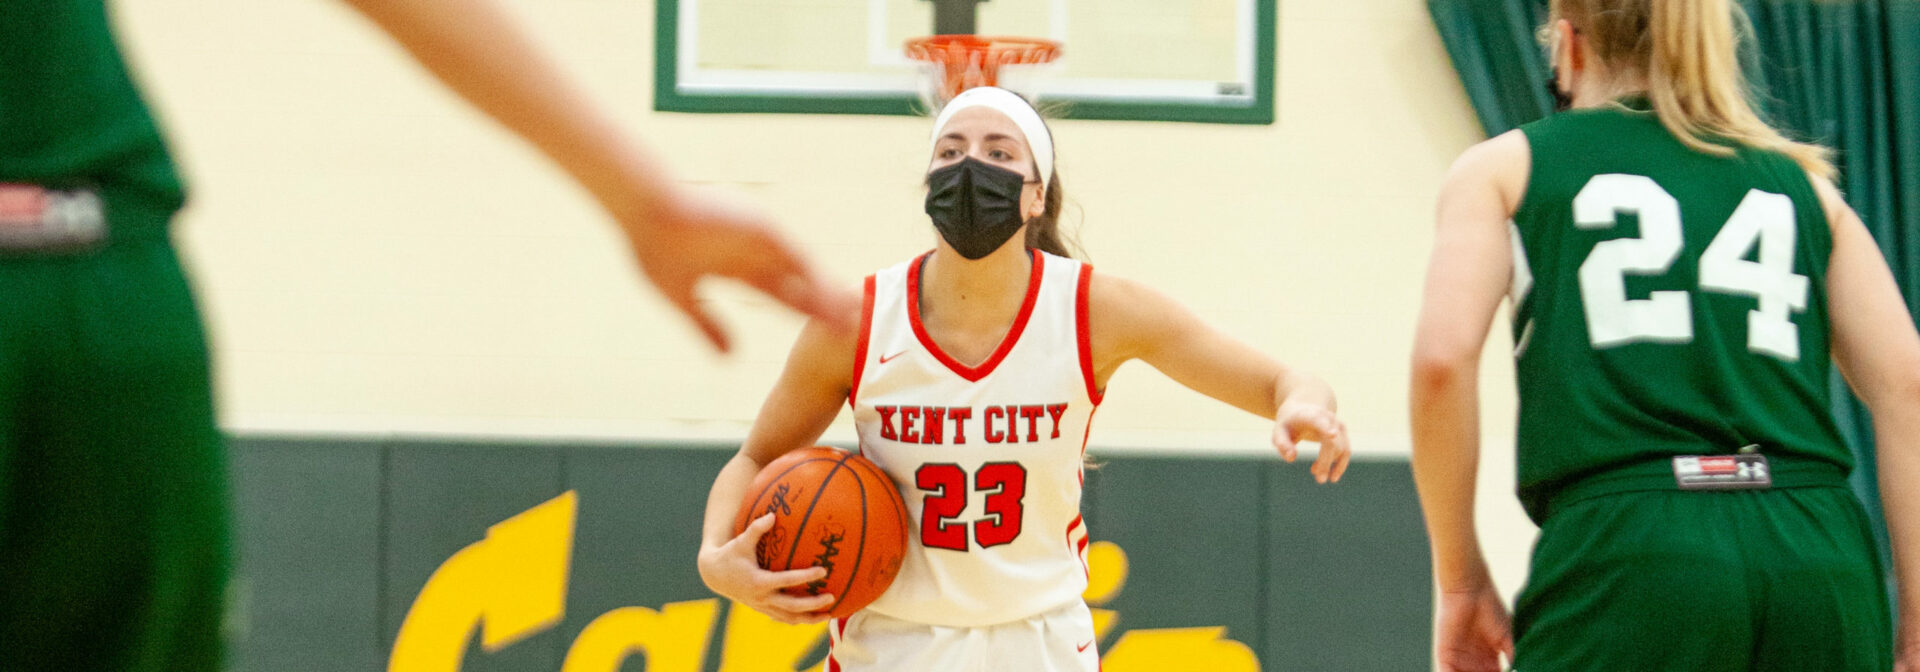 Kent City bombers get hot after halftime, beat Western Michigan Christian 53-37, move on to Division 3 regional finals